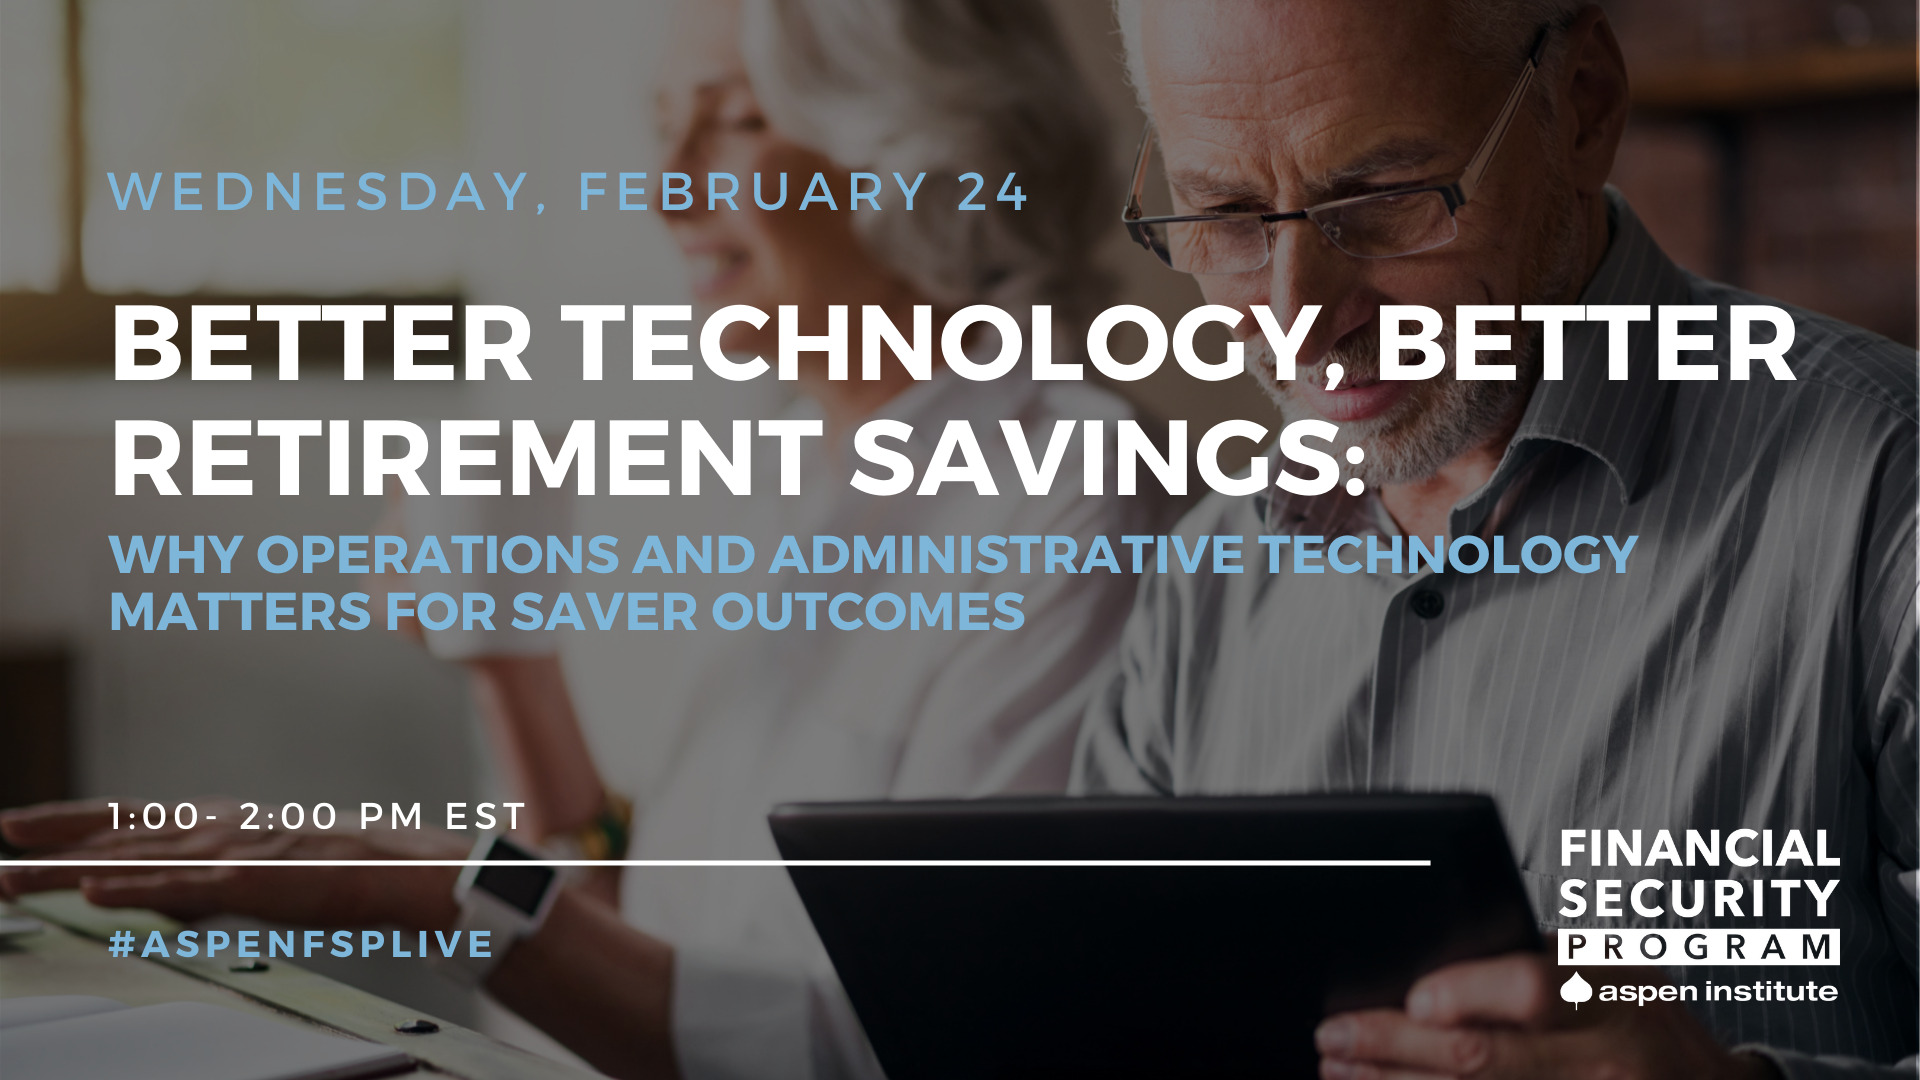 Better Technology, Better Retirement Savings: Why Operations and Administrative Technology Matters for Saver Outcomes